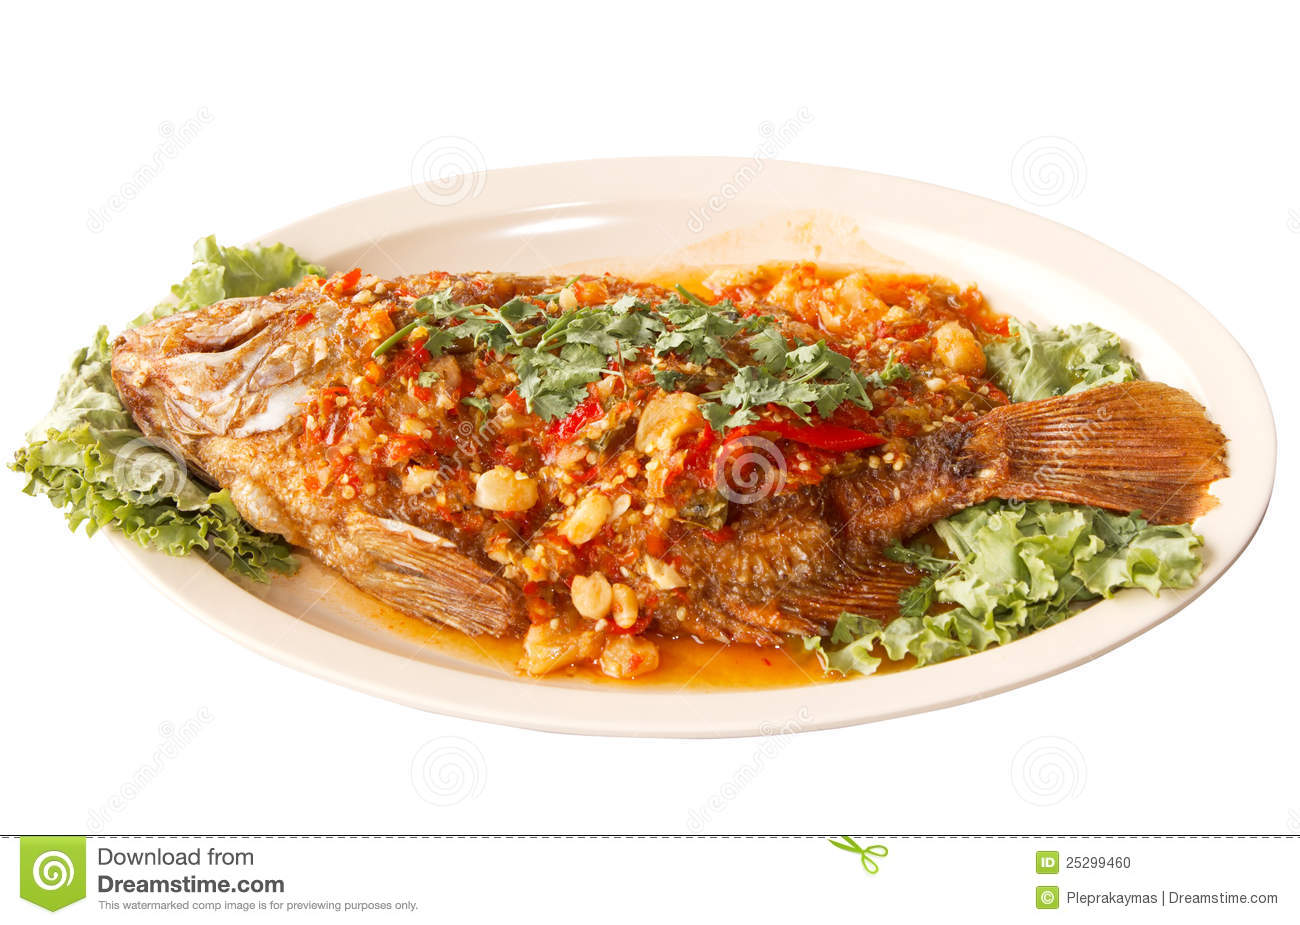 Fried fish with fresh herbs and sweet spicy sauce on plate isolate ...